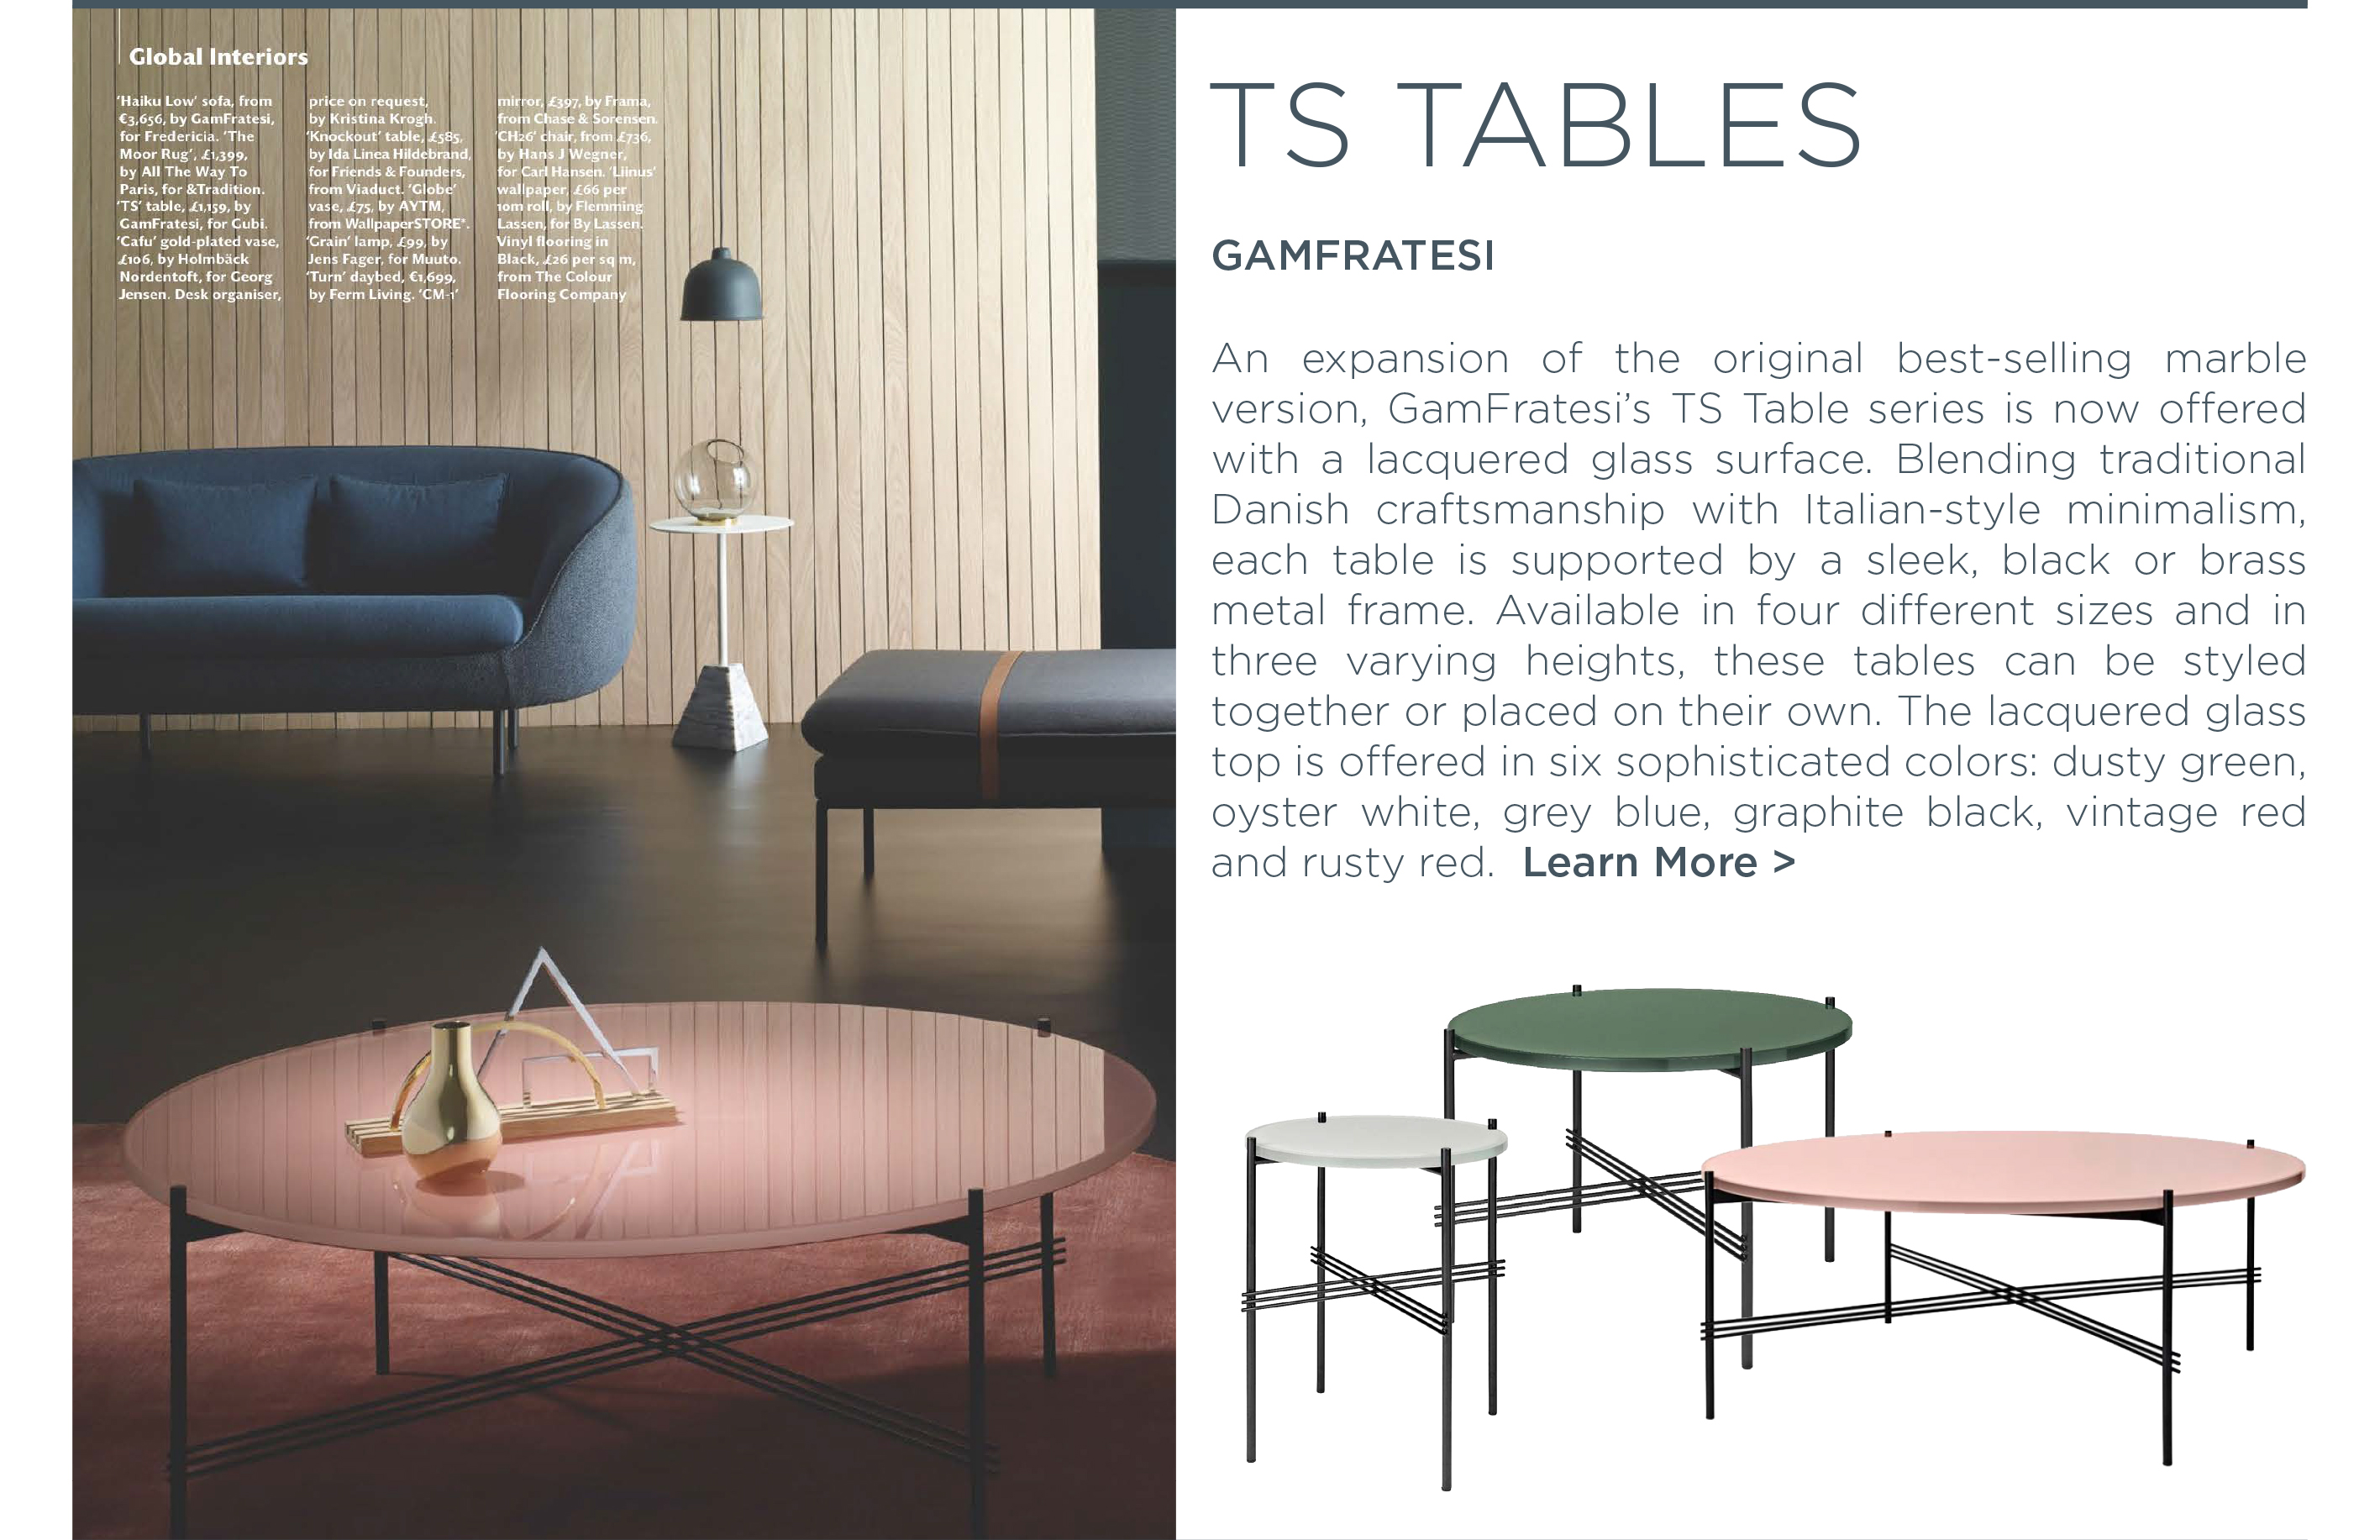 Glass TS table series gamfratesi gubi danish designer furniture suite ny new york